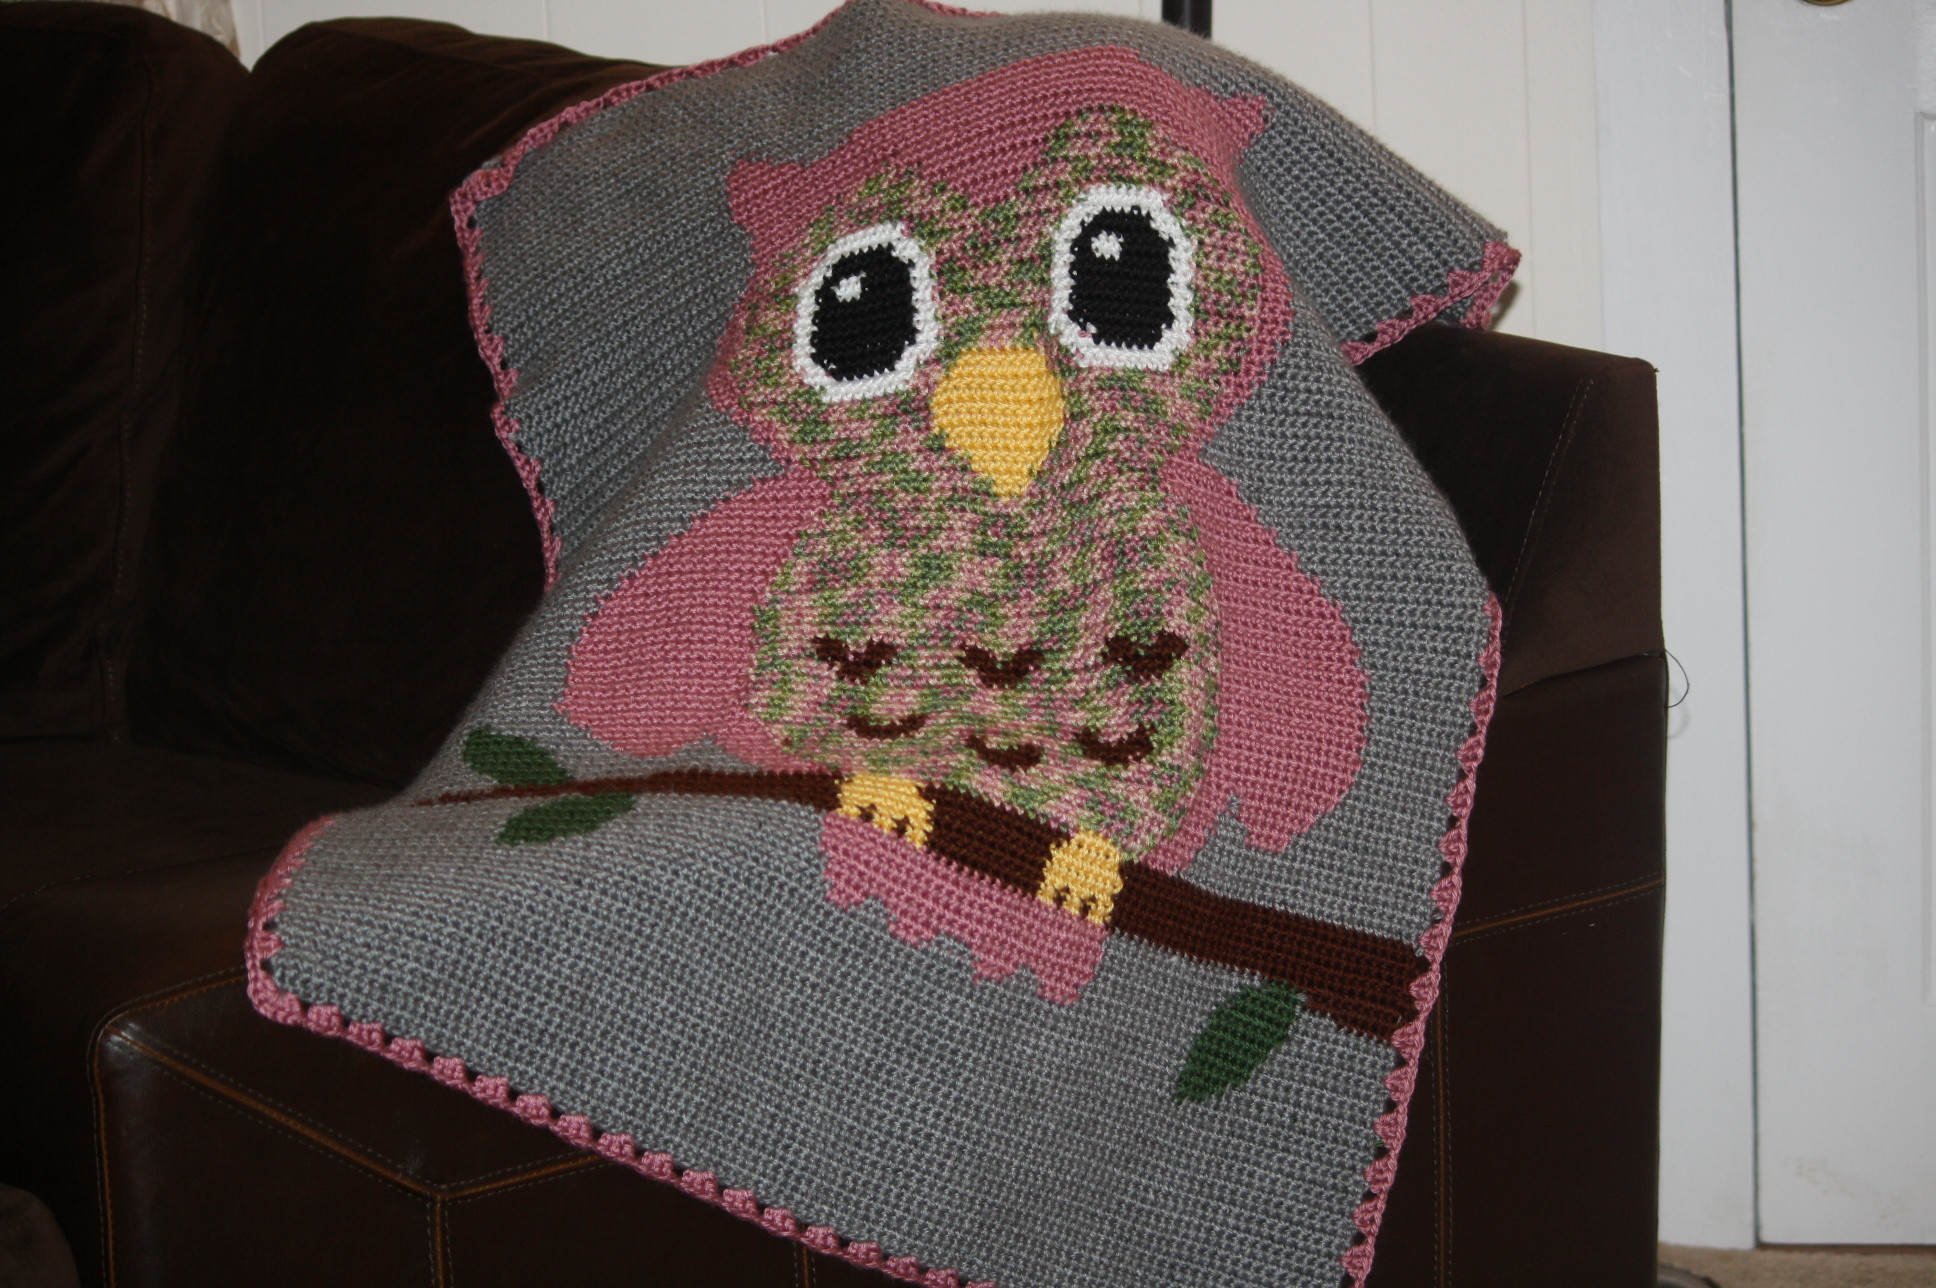 Crochet Owl Blanket Pattern New Crocheted Baby Girl Owl Blanket Of Luxury 42 Models Crochet Owl Blanket Pattern